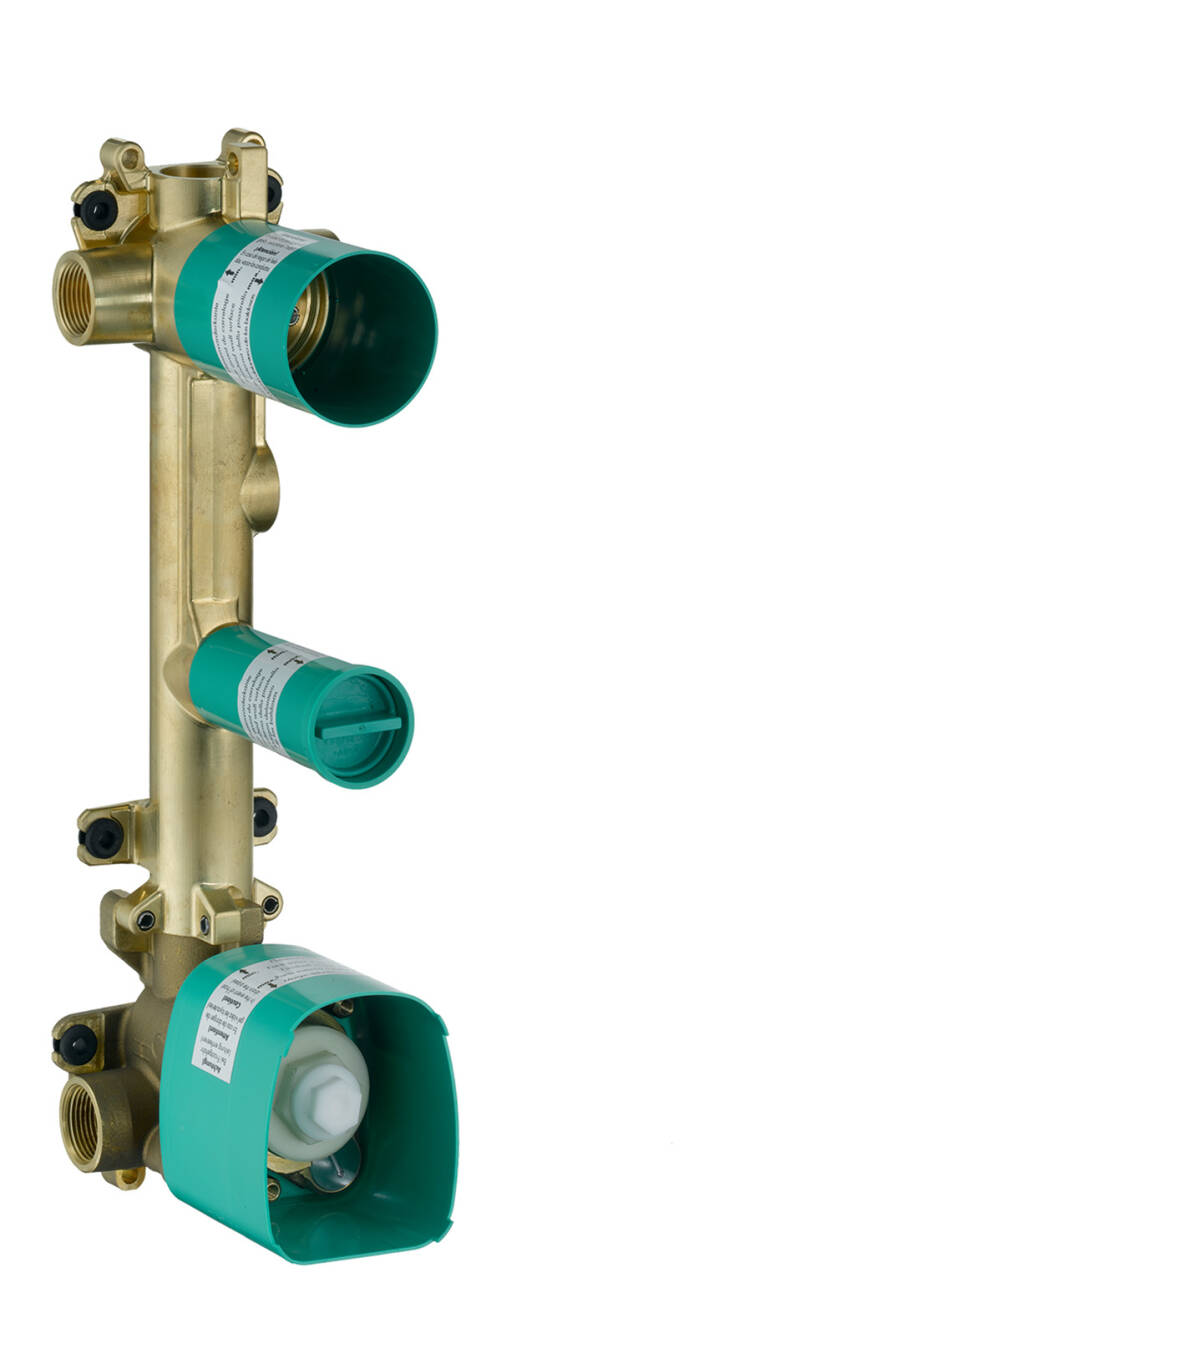 Basic set for thermostatic module 380/120 for concealed installation for 2 functions, n.a., 36701180